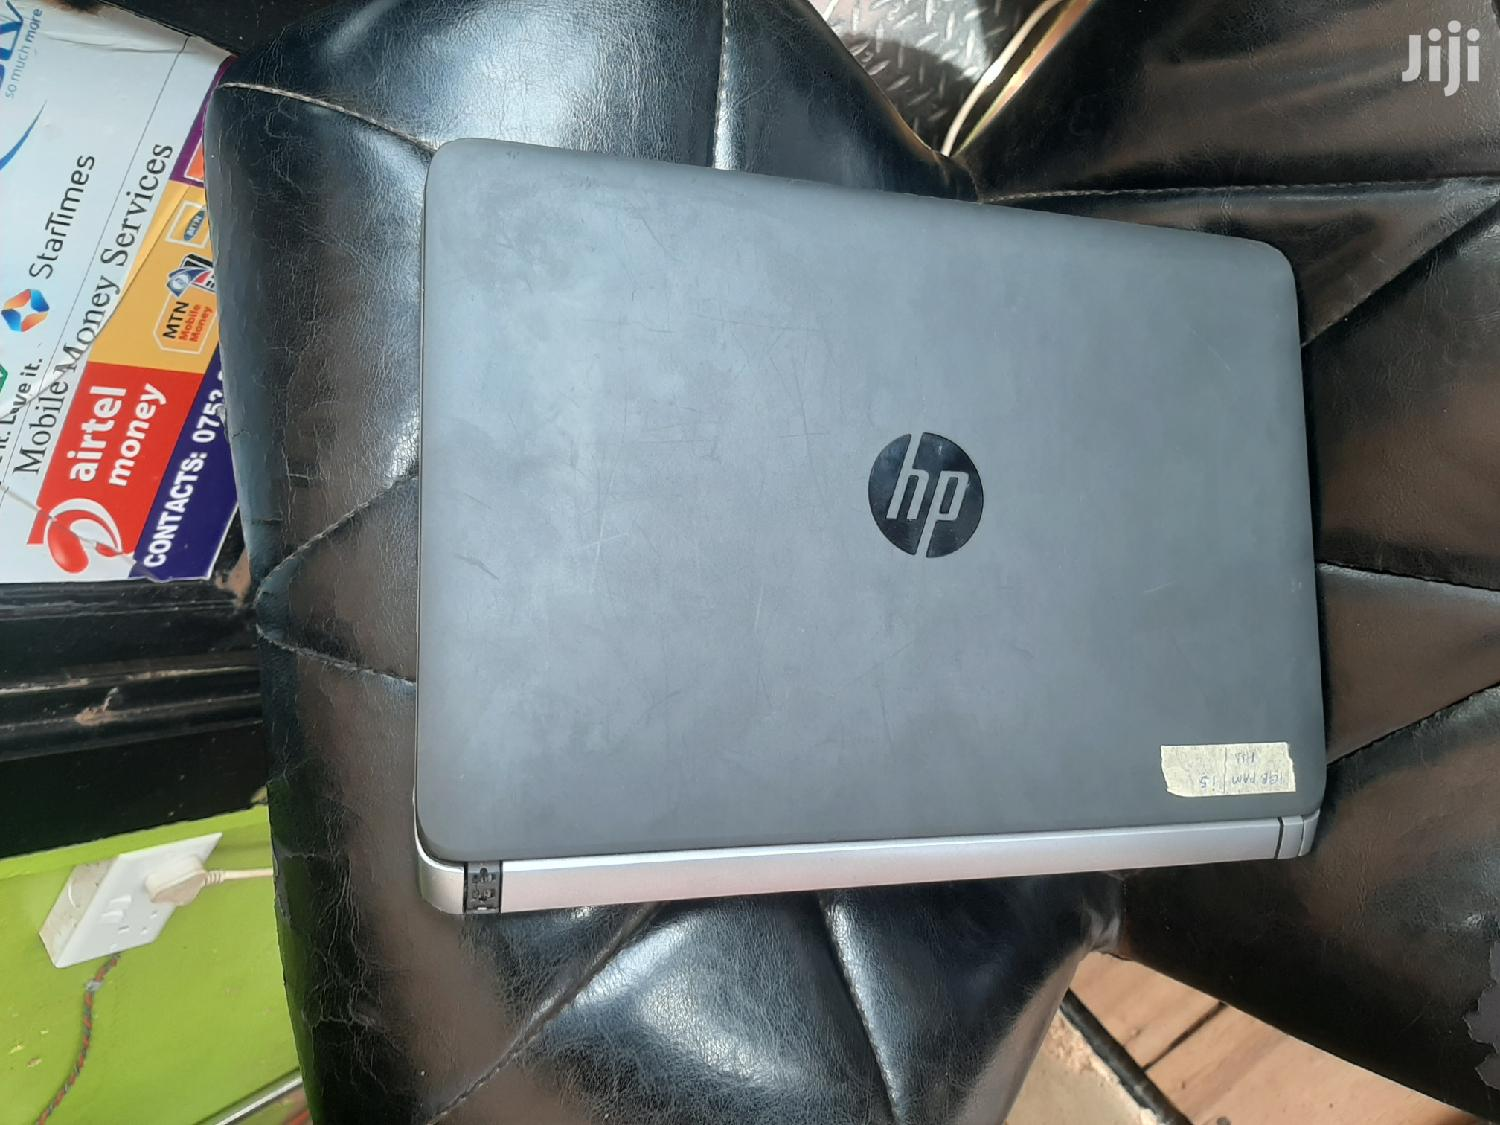 Laptop HP Pavilion X360 11t 4GB Intel Core i5 HDD 250GB | Laptops & Computers for sale in Kampala, Central Region, Uganda